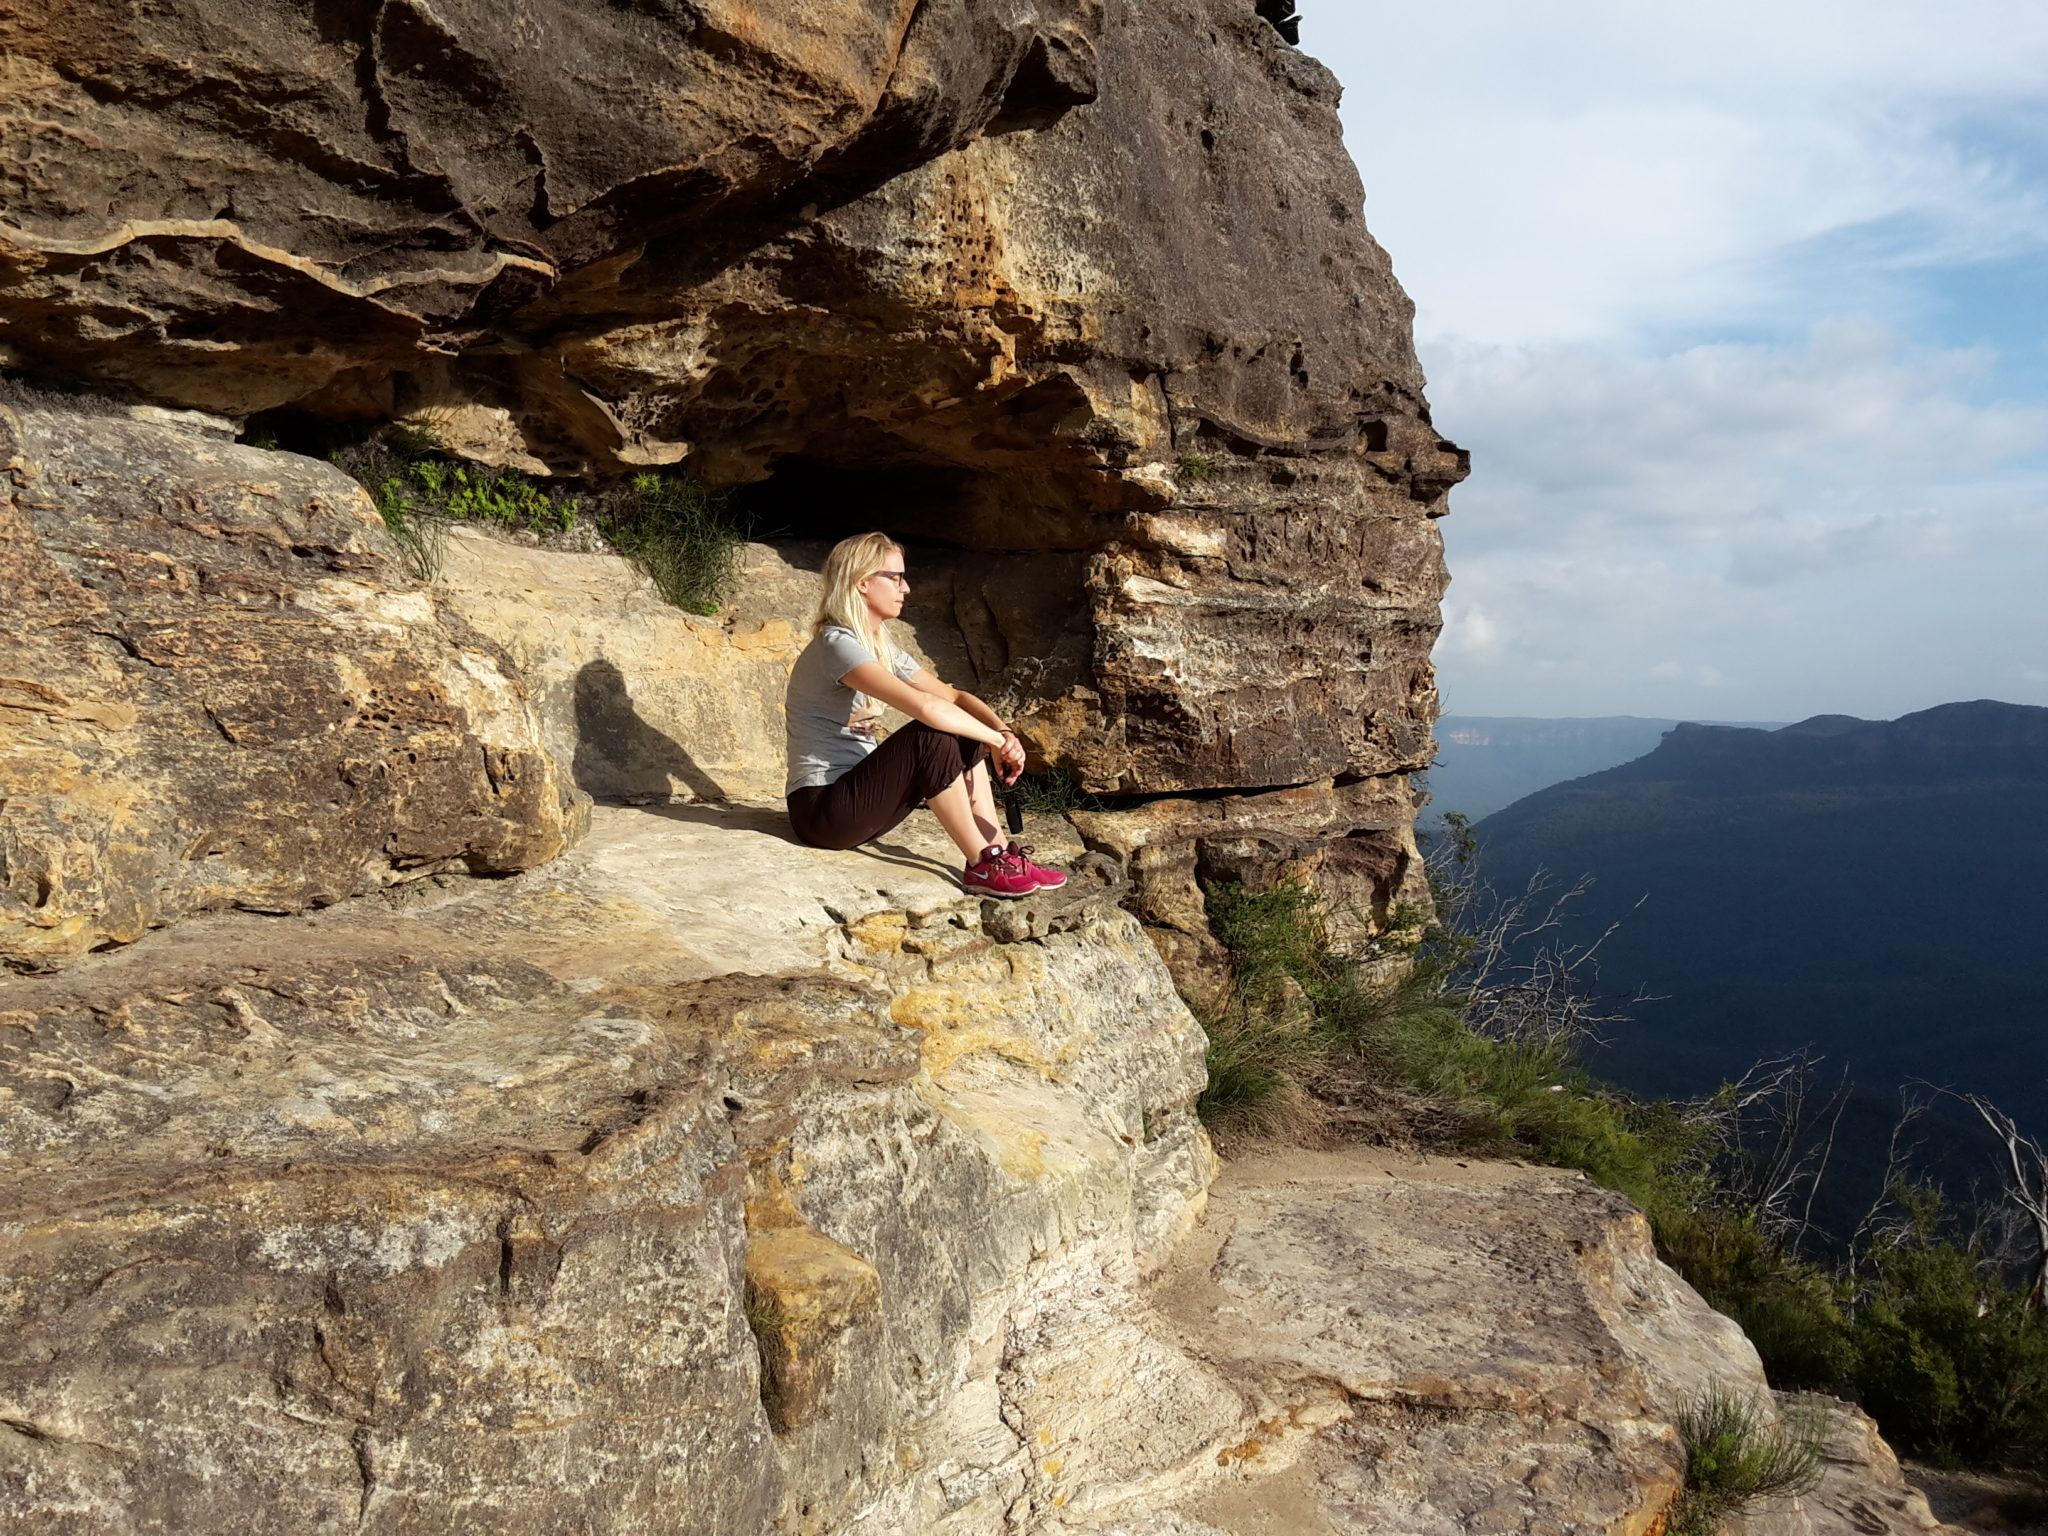 Looking at the world in Blue Mountains, Australia